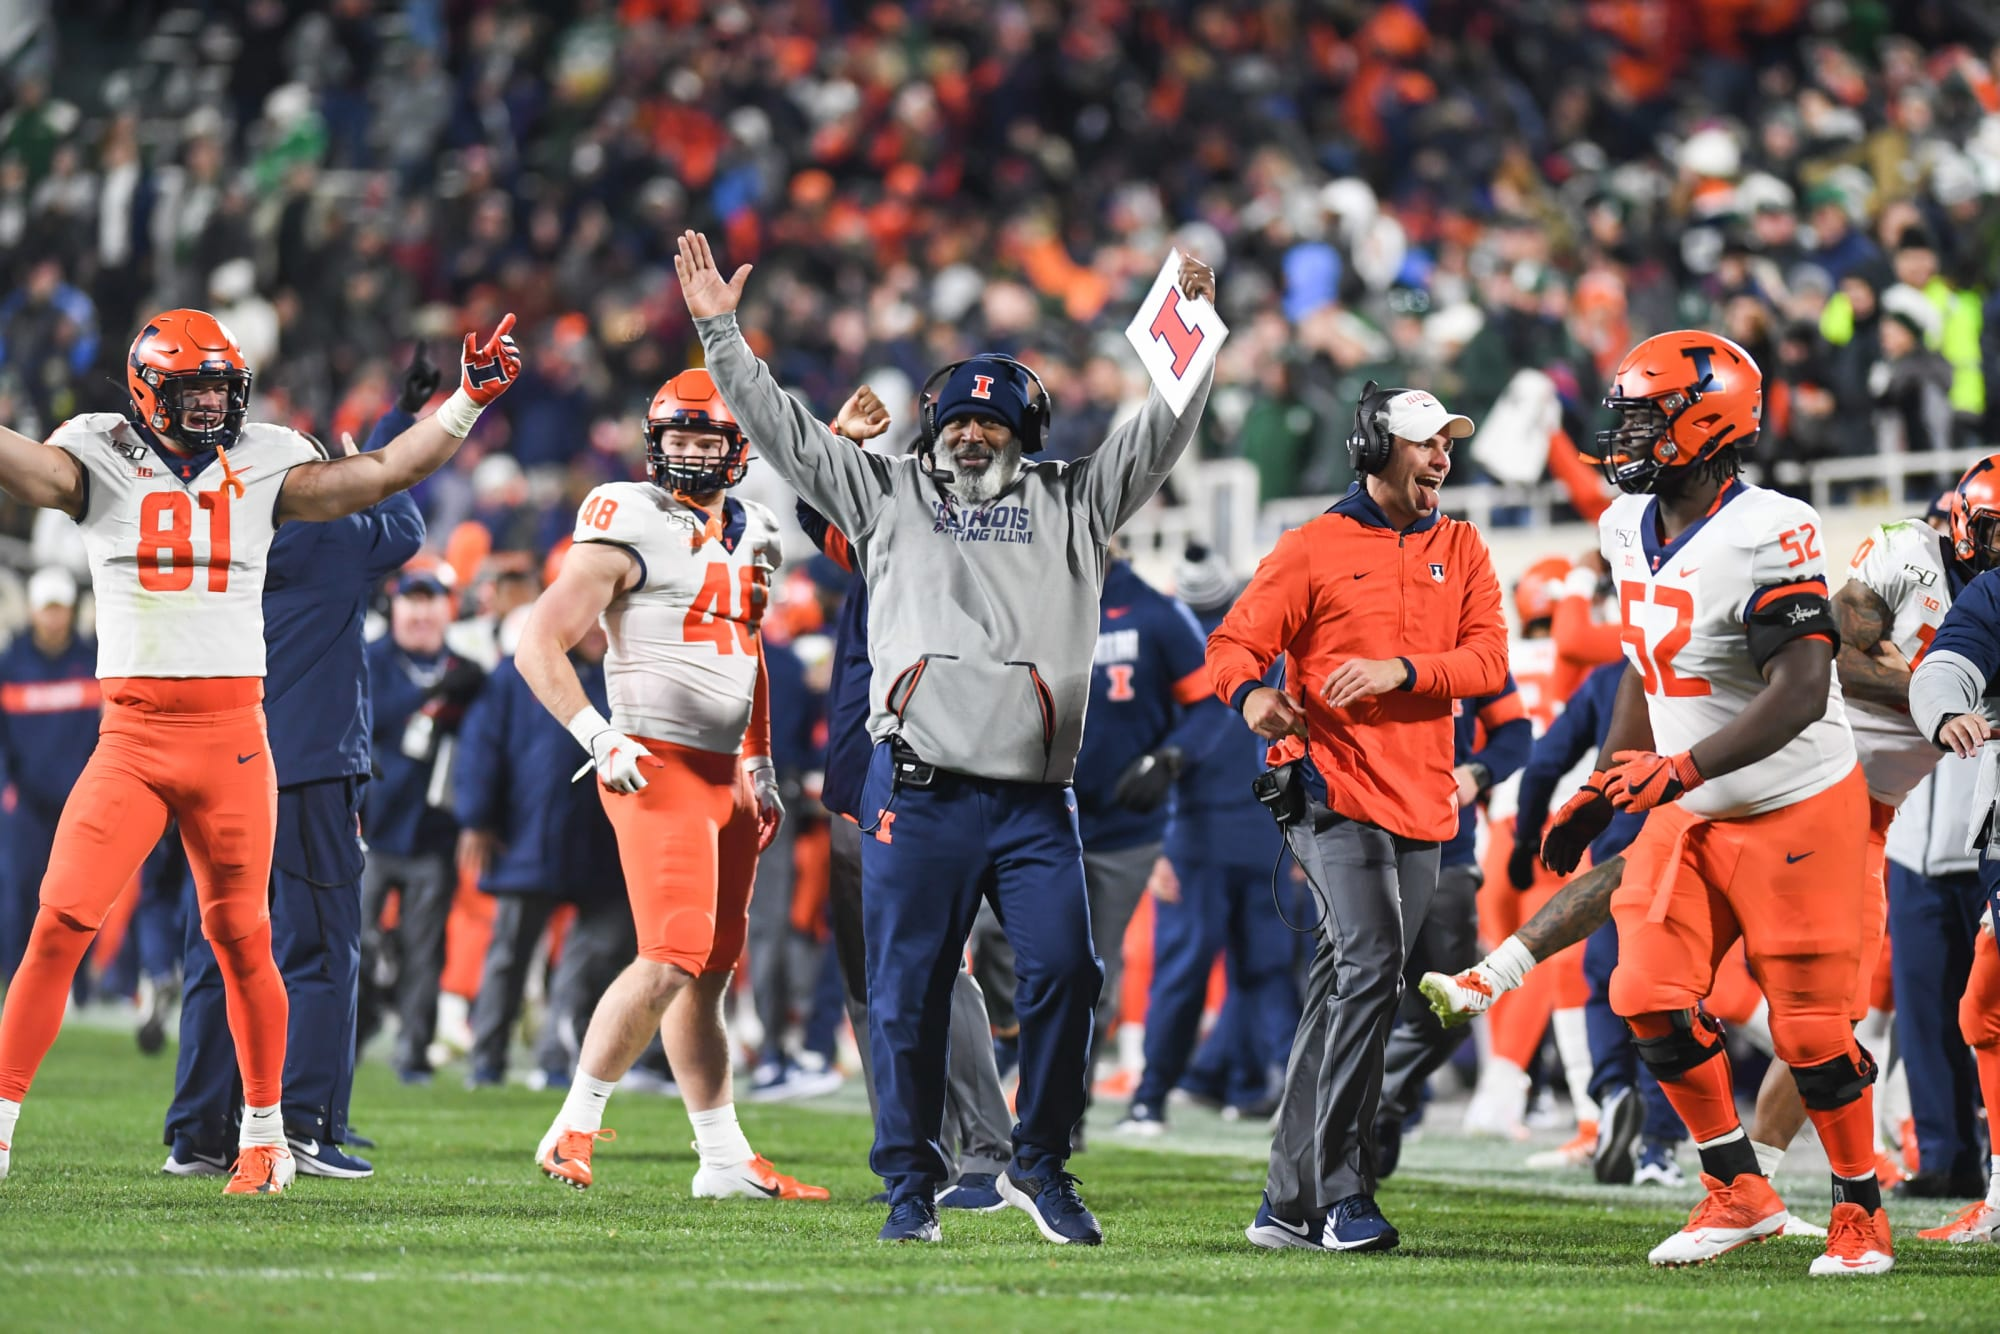 Illinois Football: 3 players looking to rebound from the 2019 season